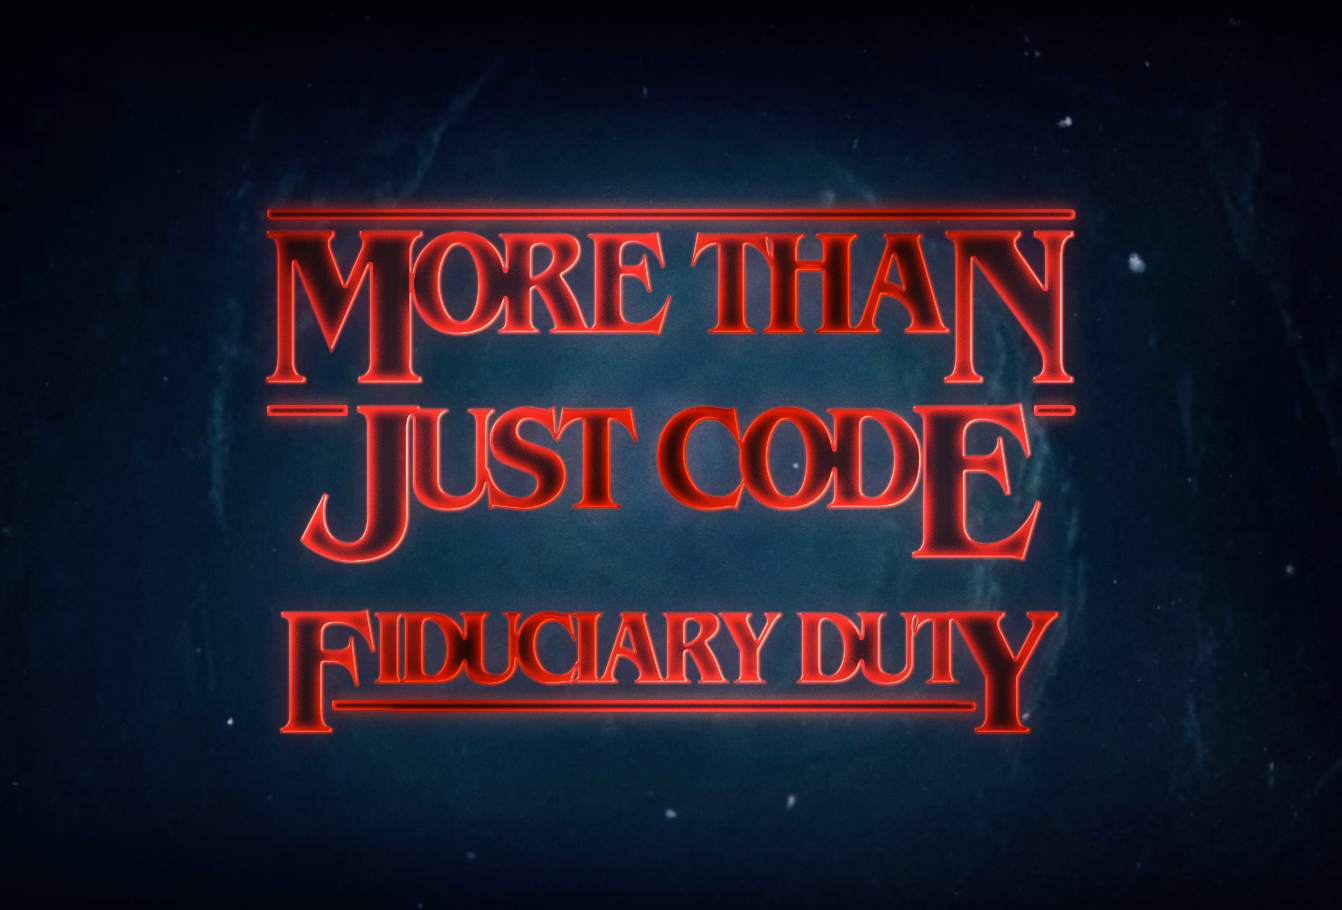 Episode 171 - A Fiduciary Duty